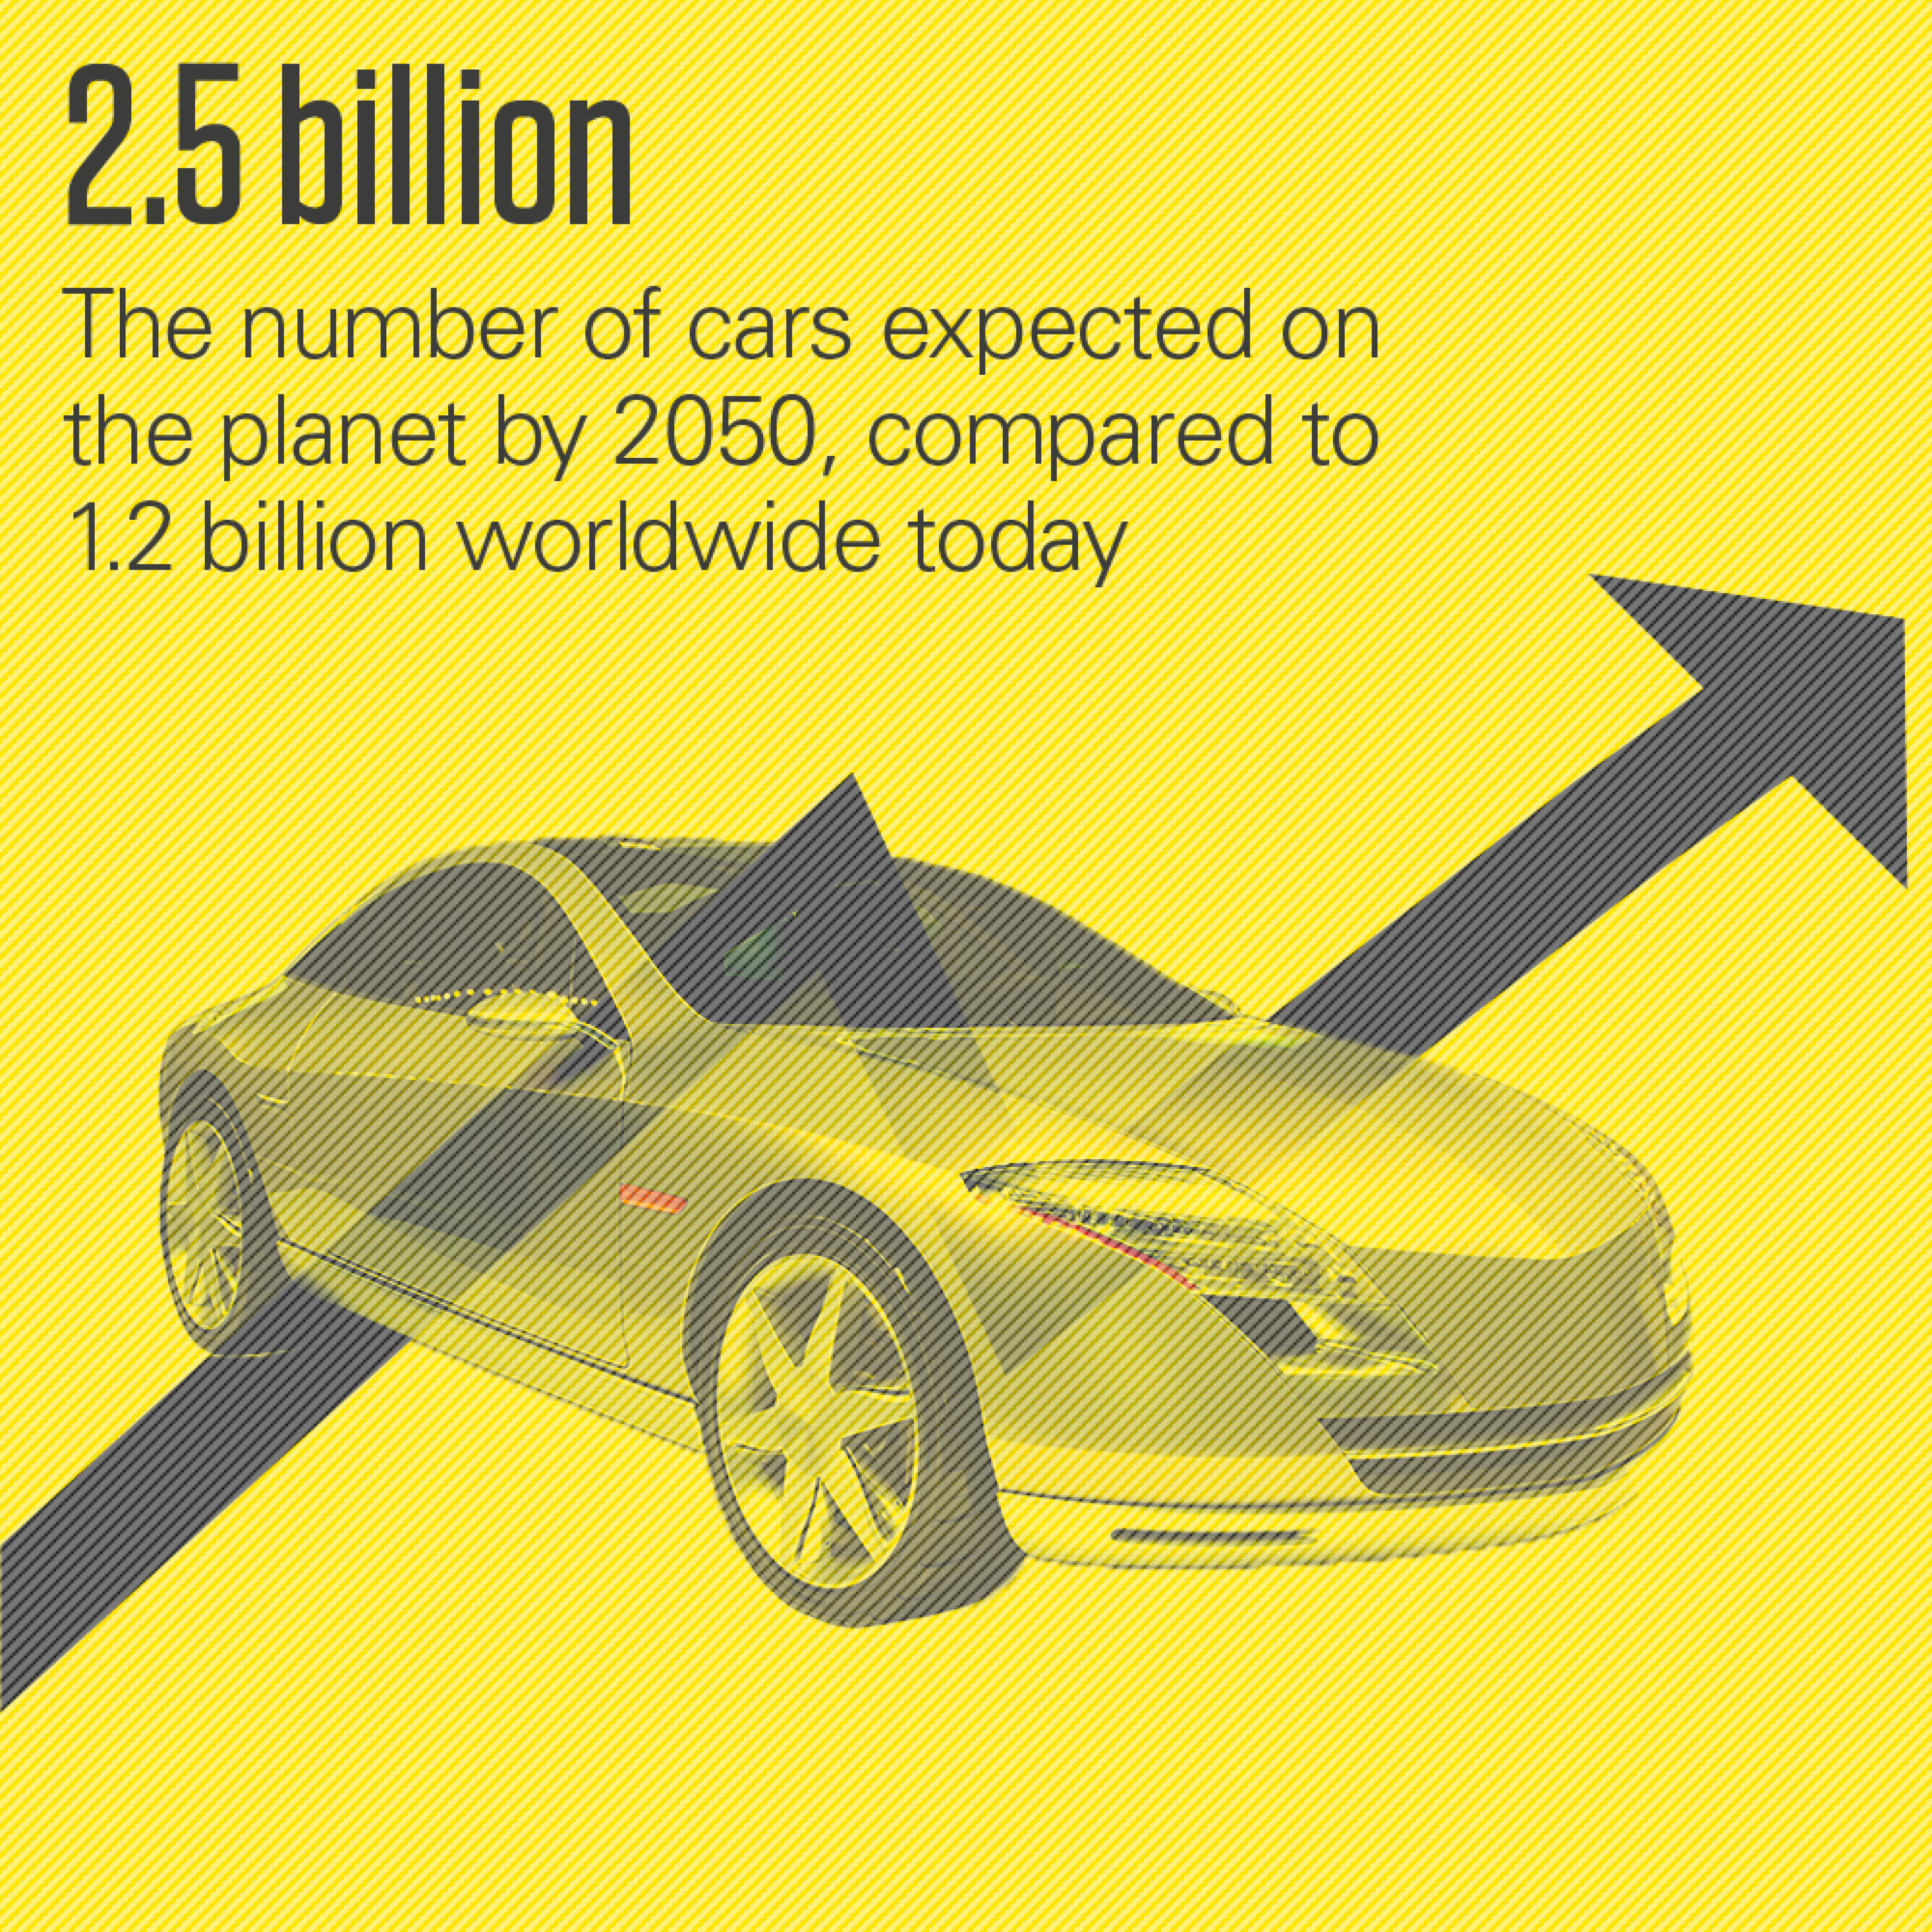 It is expected that there will be 2.5 billion cars on the planet by 2050